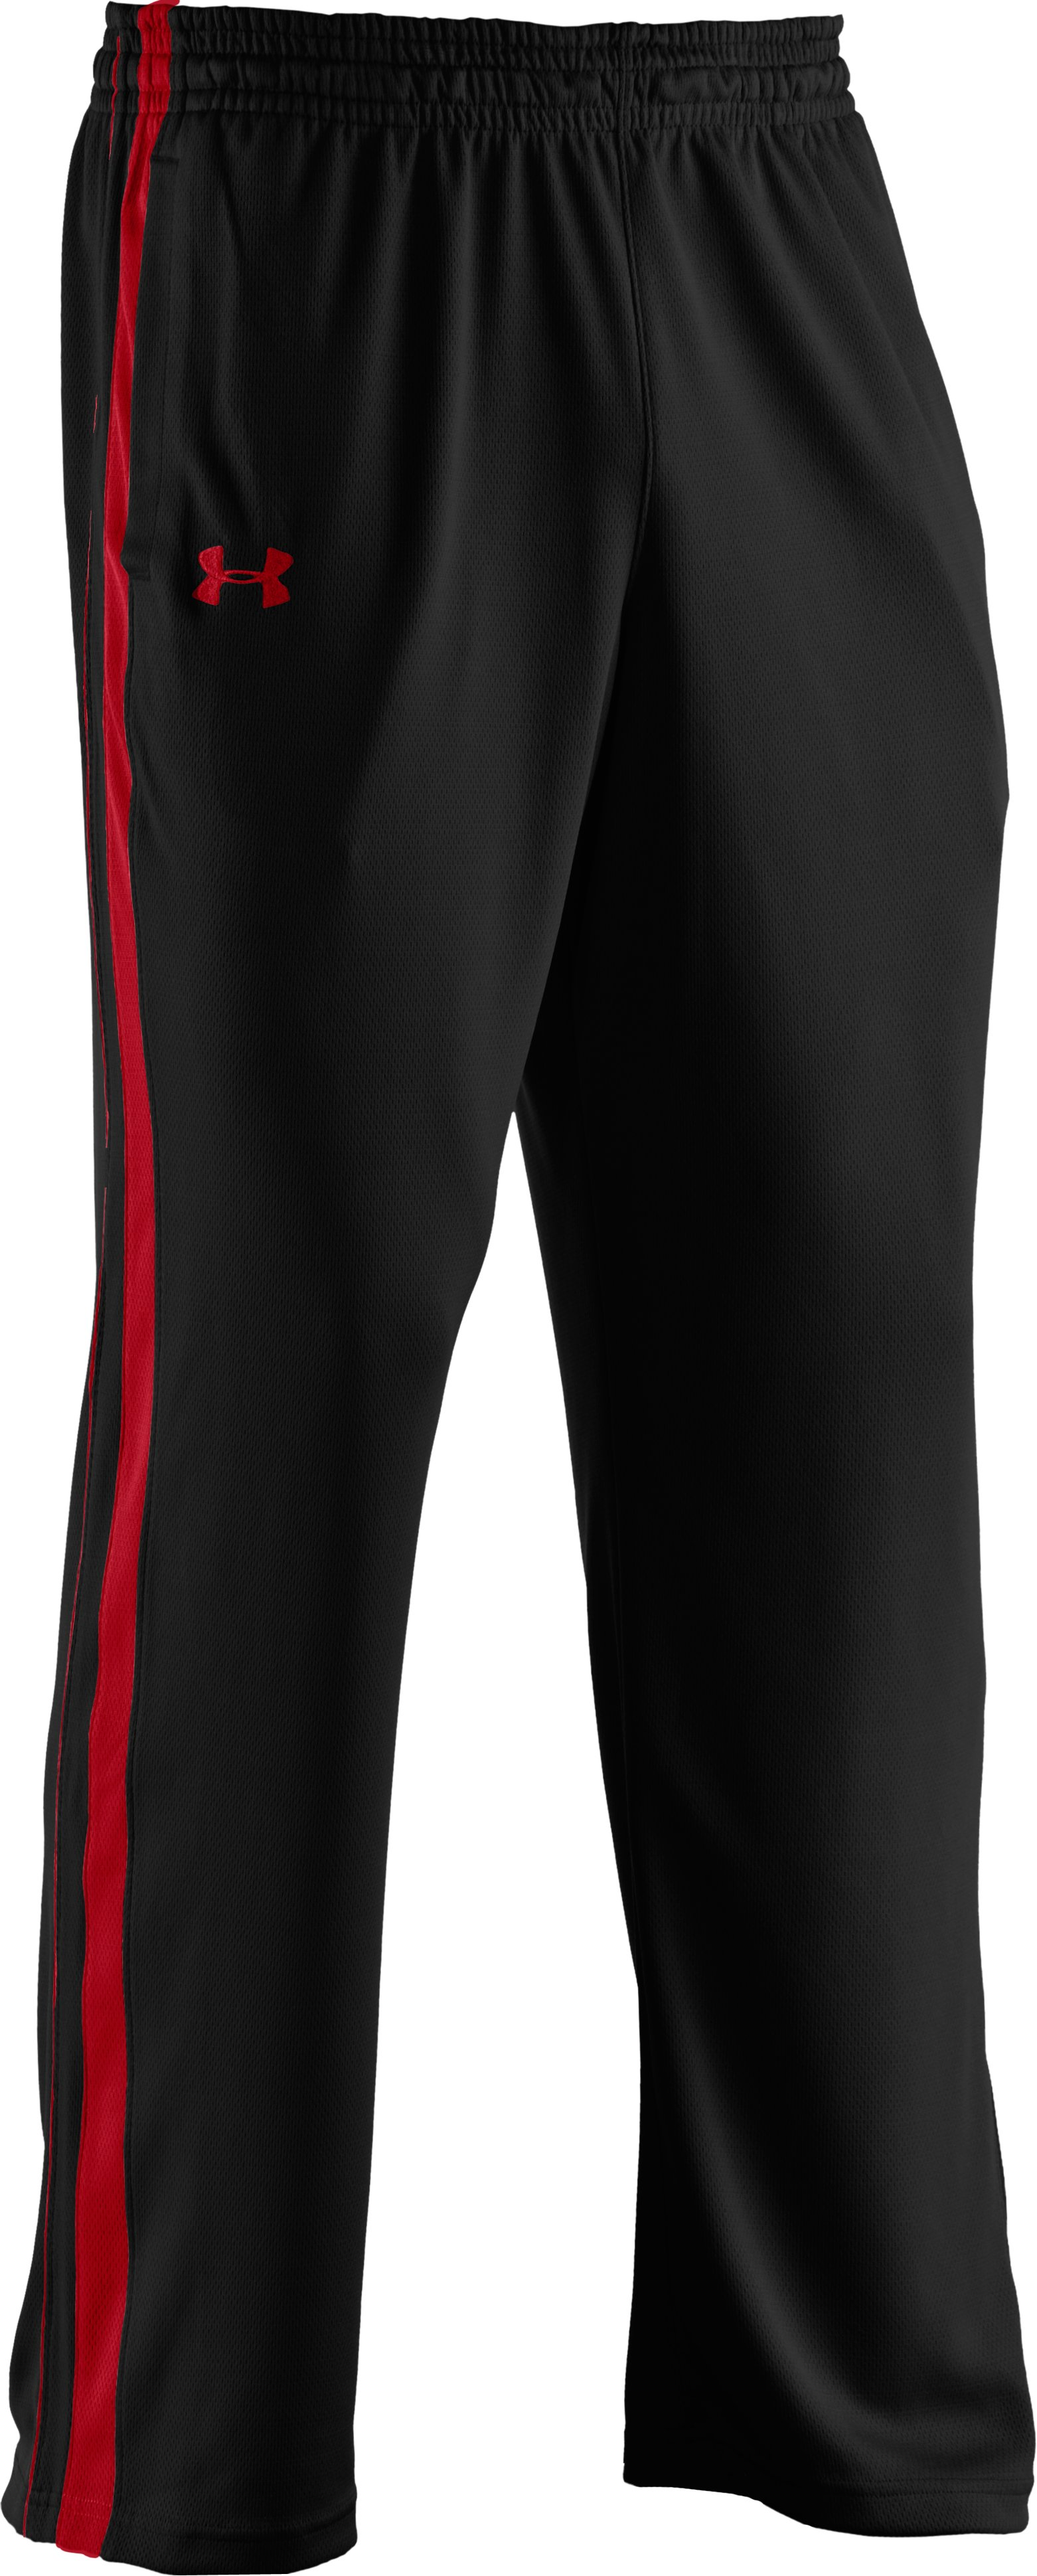 Men's UA Flex Colorblock Pants, Black